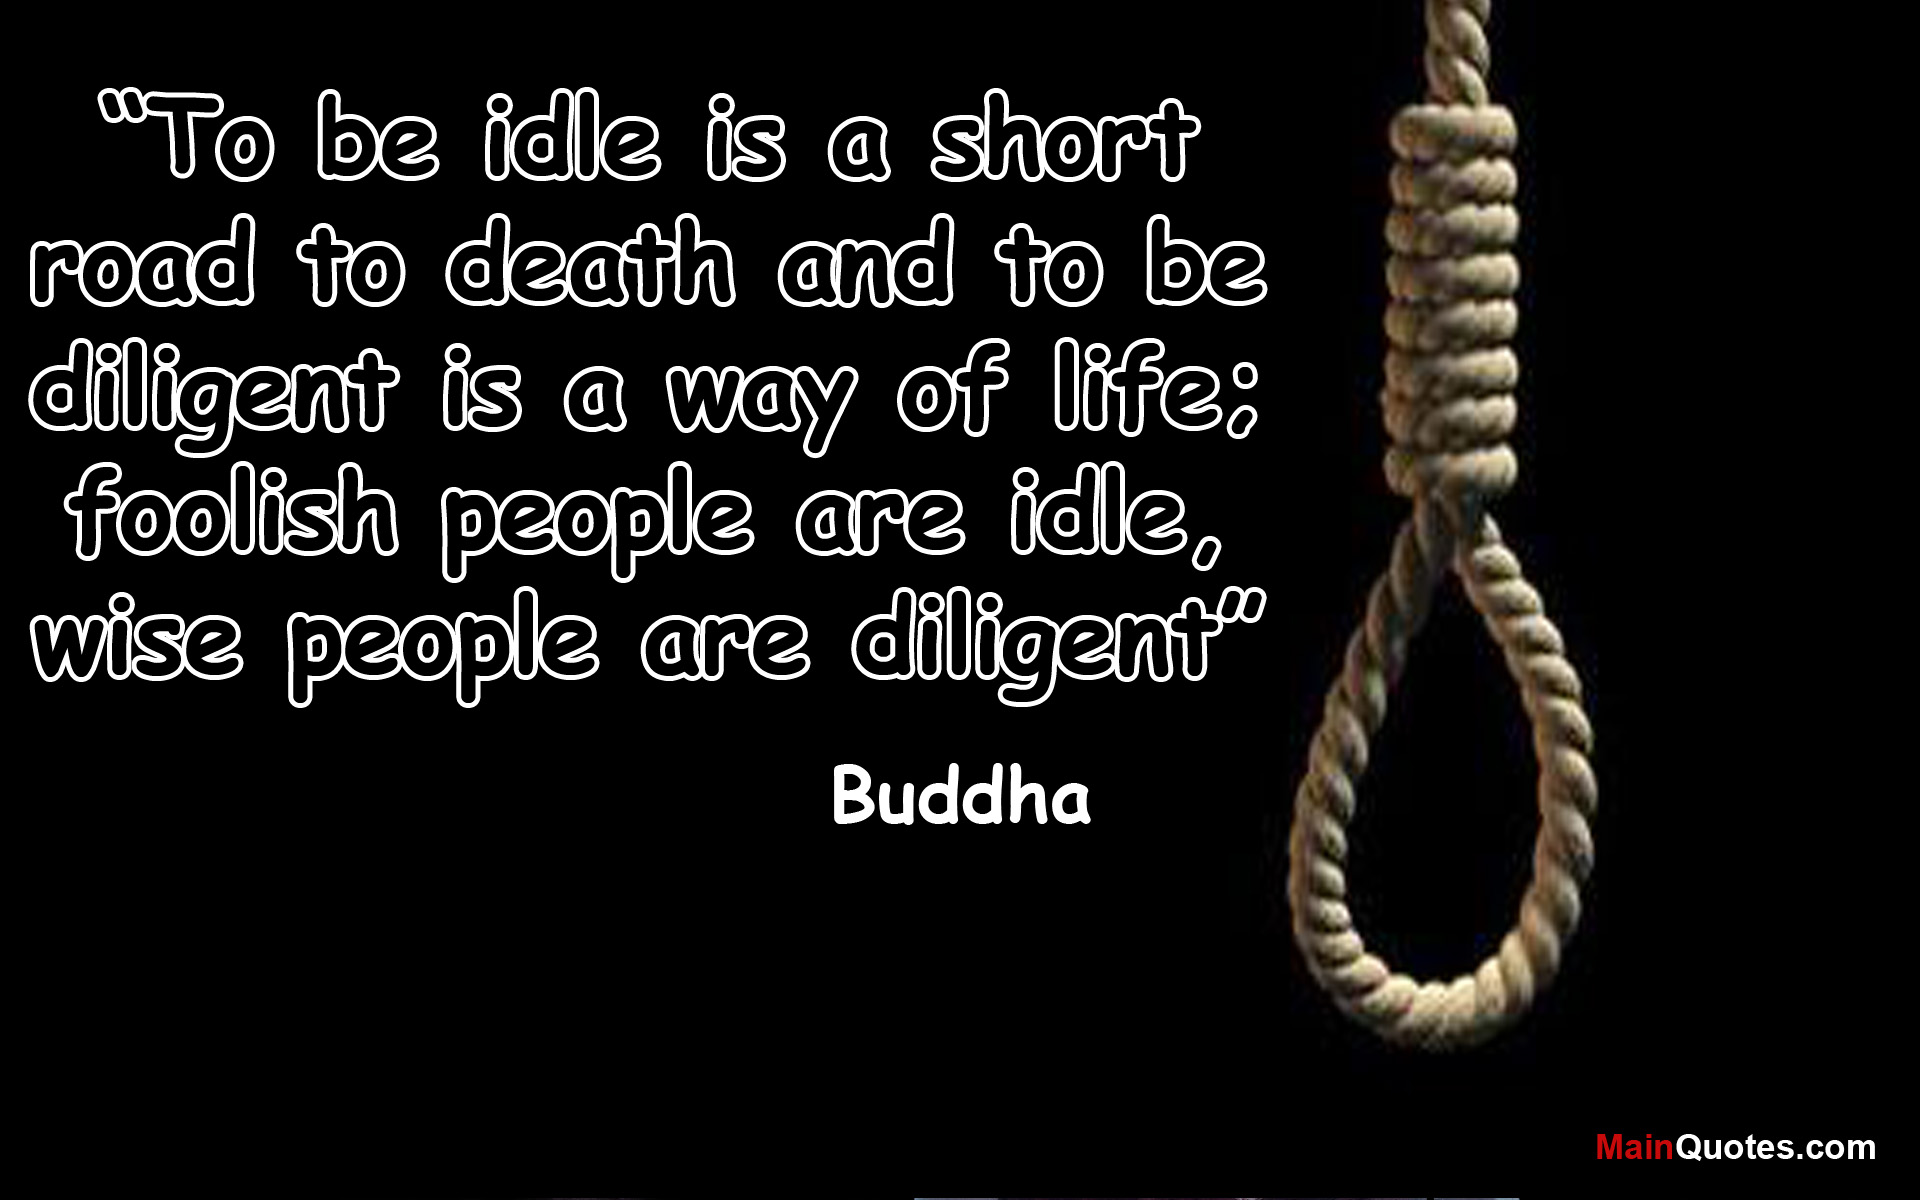 Quotes About Death Of A Friend Quotesgram: Buddha Quotes About Death. QuotesGram